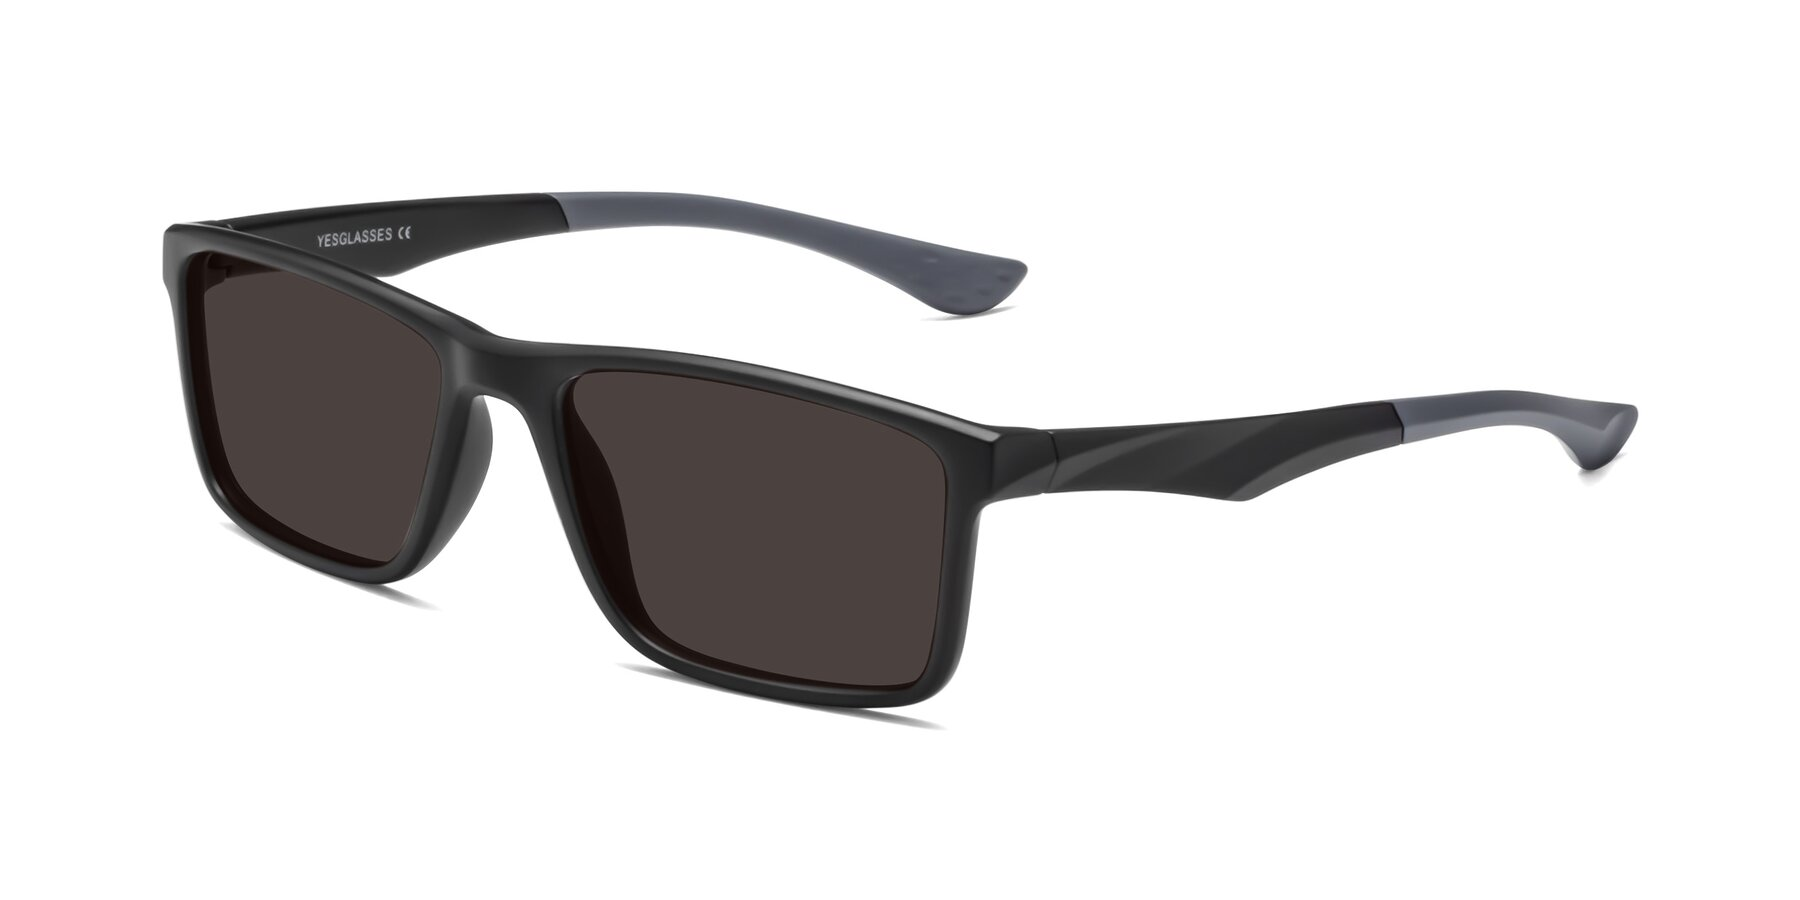 Angle of Engineer in Matte Black-Gray with Gray Tinted Lenses